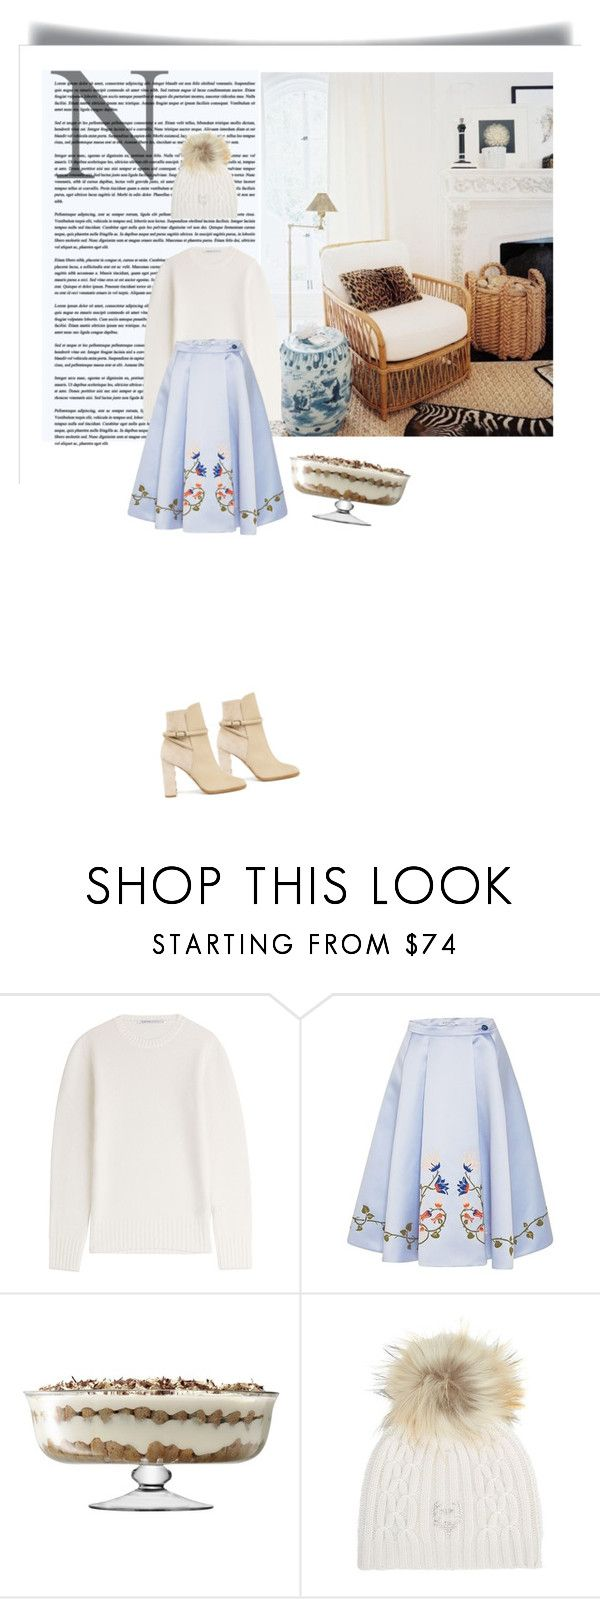 """""""Untitled #1068"""" by mercedesrenee ❤ liked on Polyvore featuring Agnona, VIVETTA, LSA International, M. Miller and Burberry"""